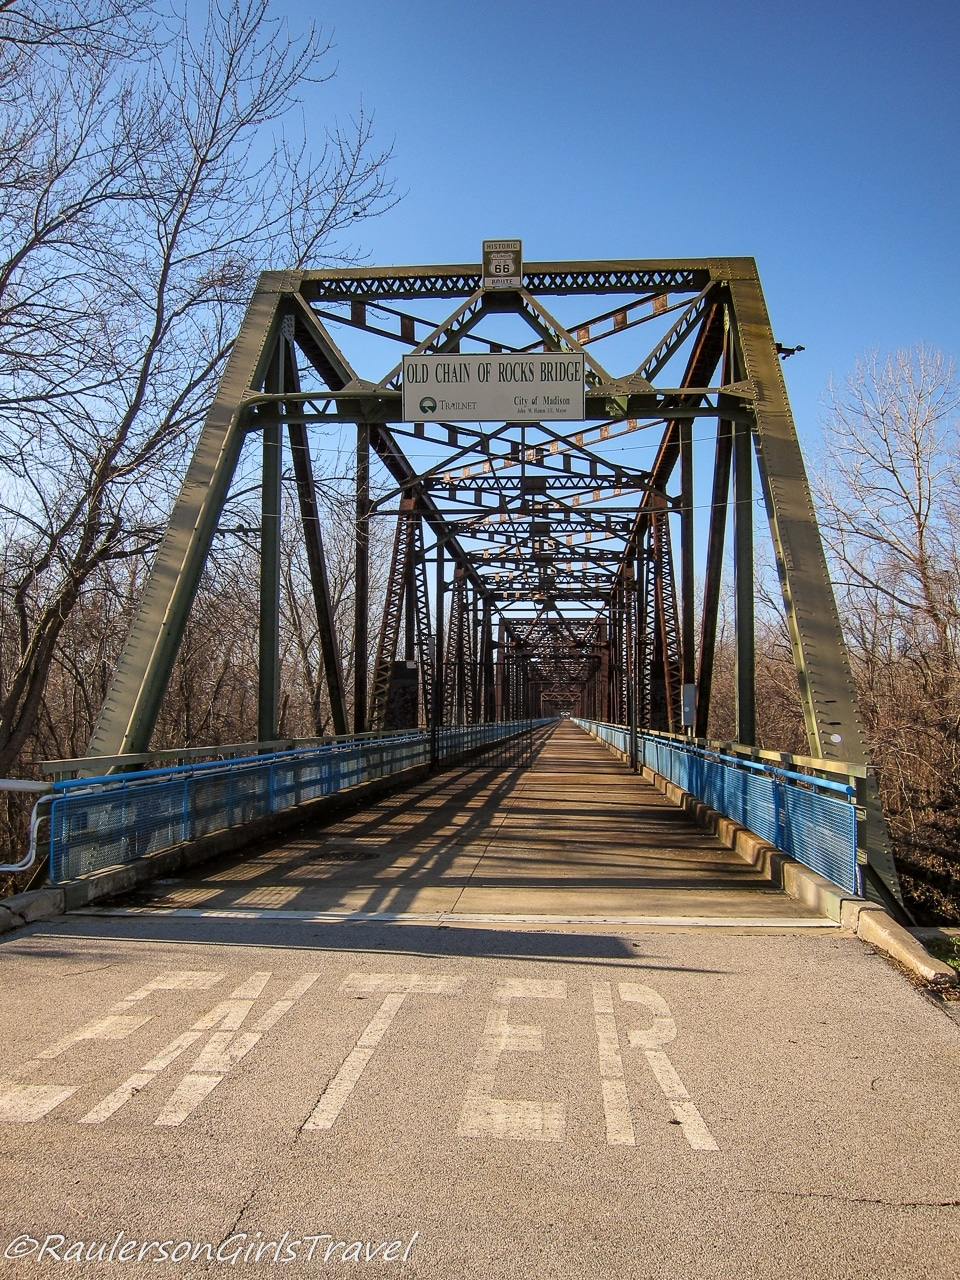 Entrance to Old Chain of Rocks Bridge